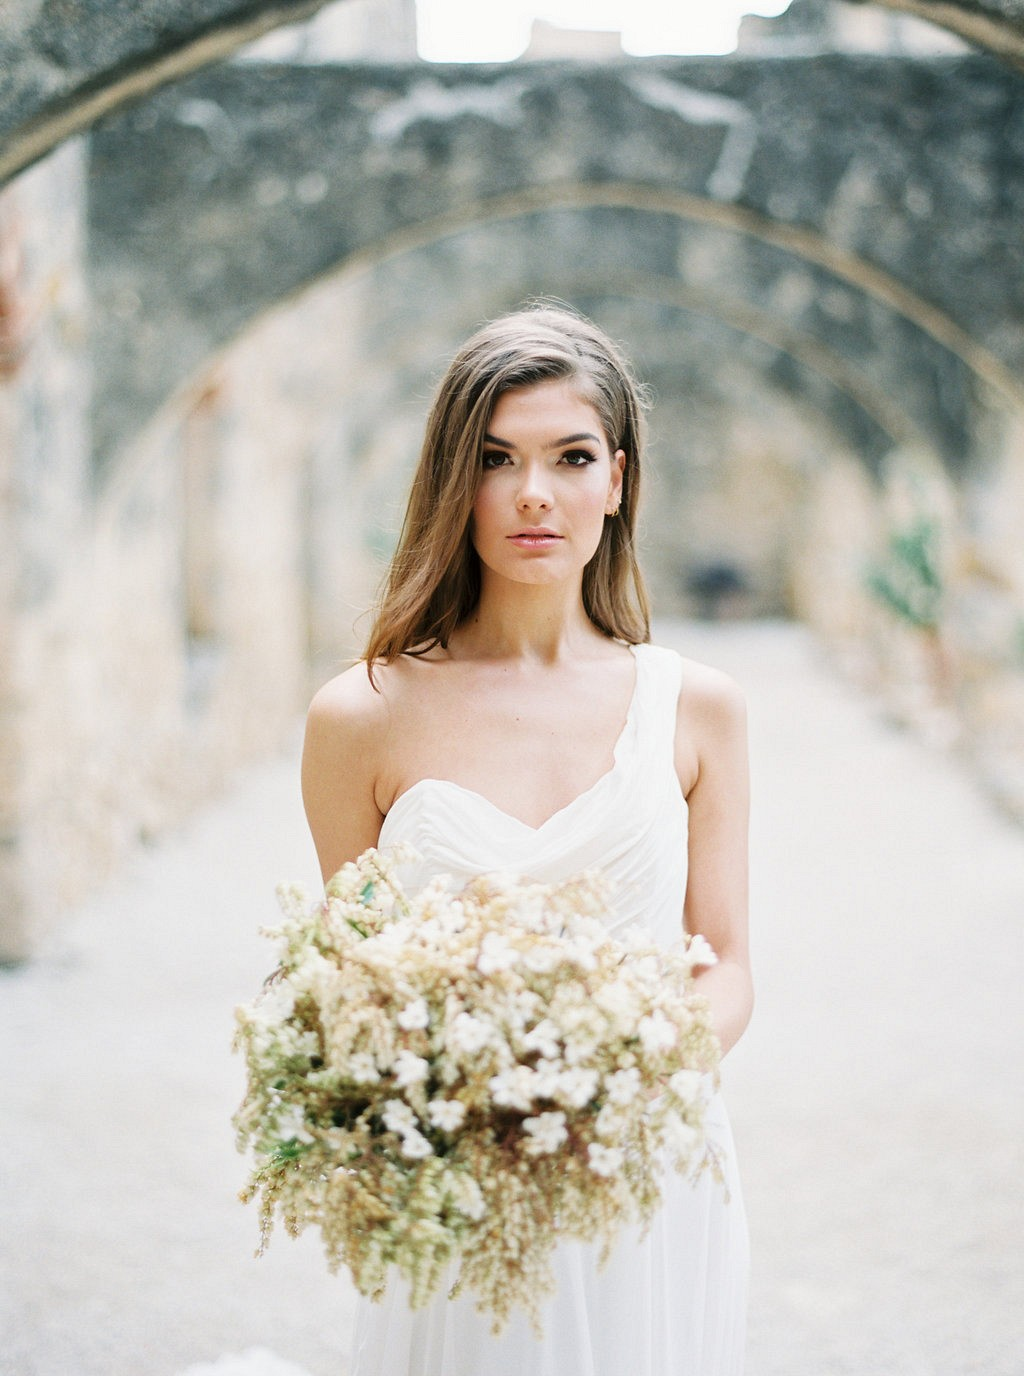 Organic and timeless San Antonio Wedding Ideas